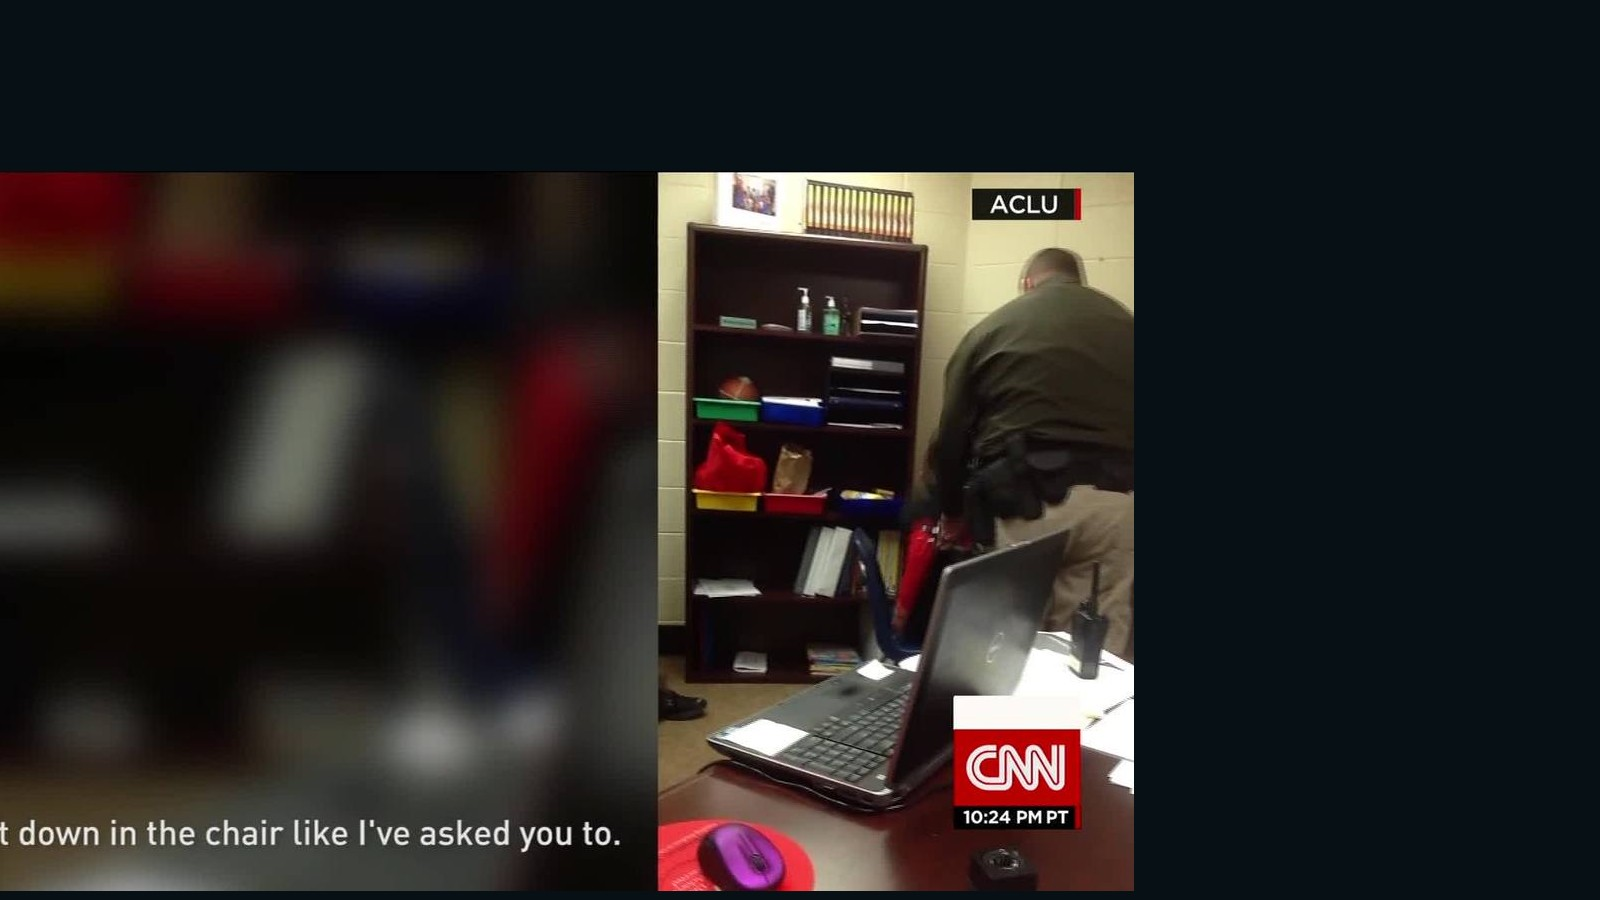 Handcuffing Third Grader Interactions >> Aclu Deputy Sued For Handcuffing Disabled Children Cnn